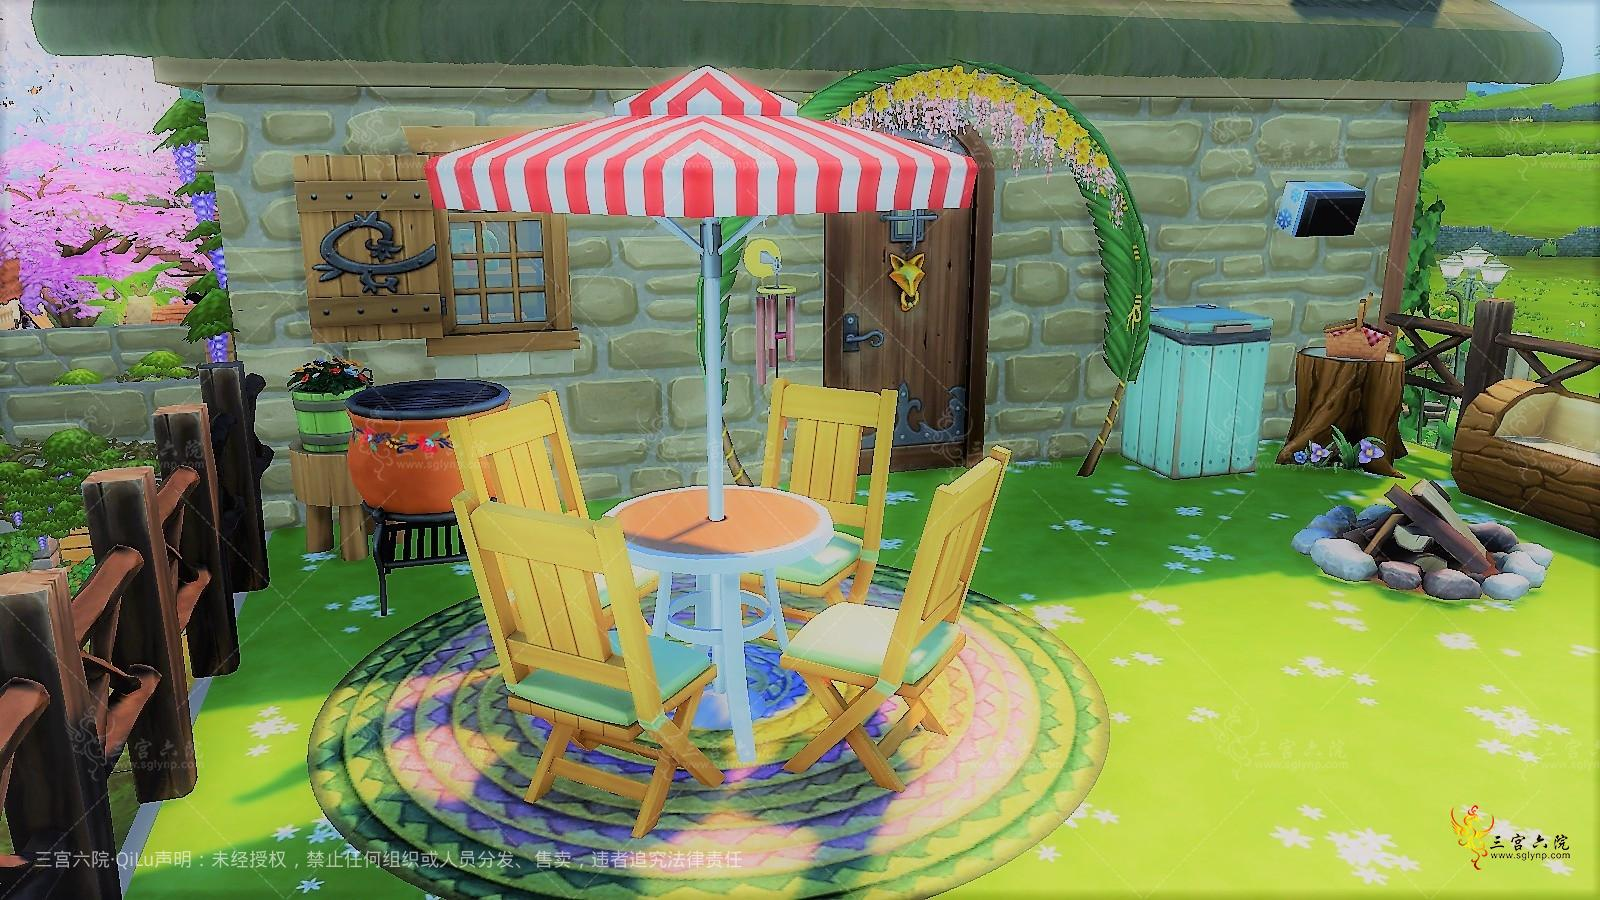 The Sims 4 2021_8_21 17_14_33.png